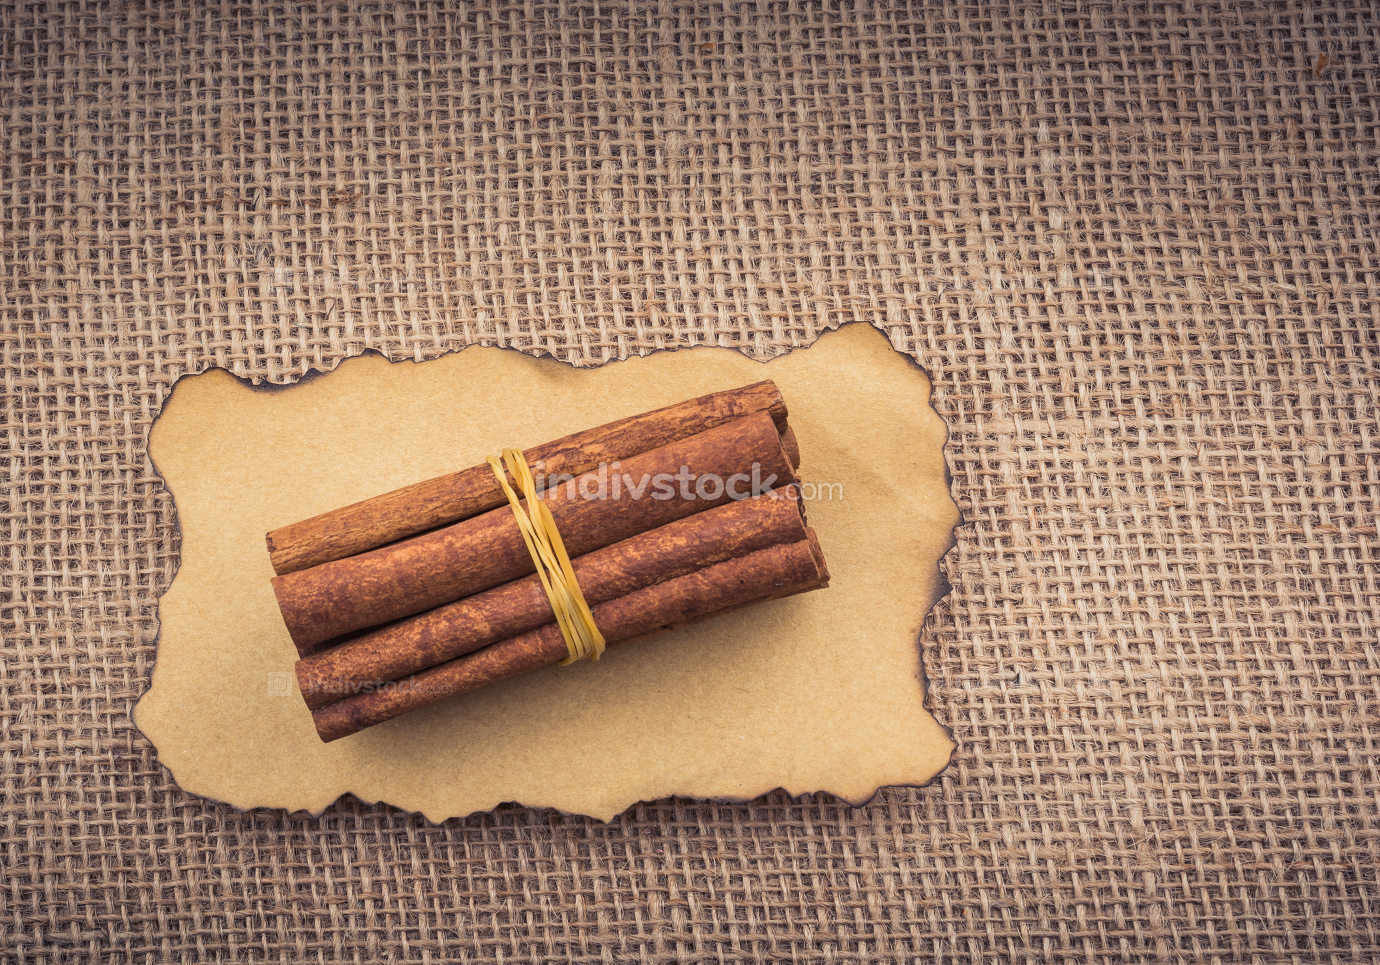 bundle of Cinnamon sticks on canvas